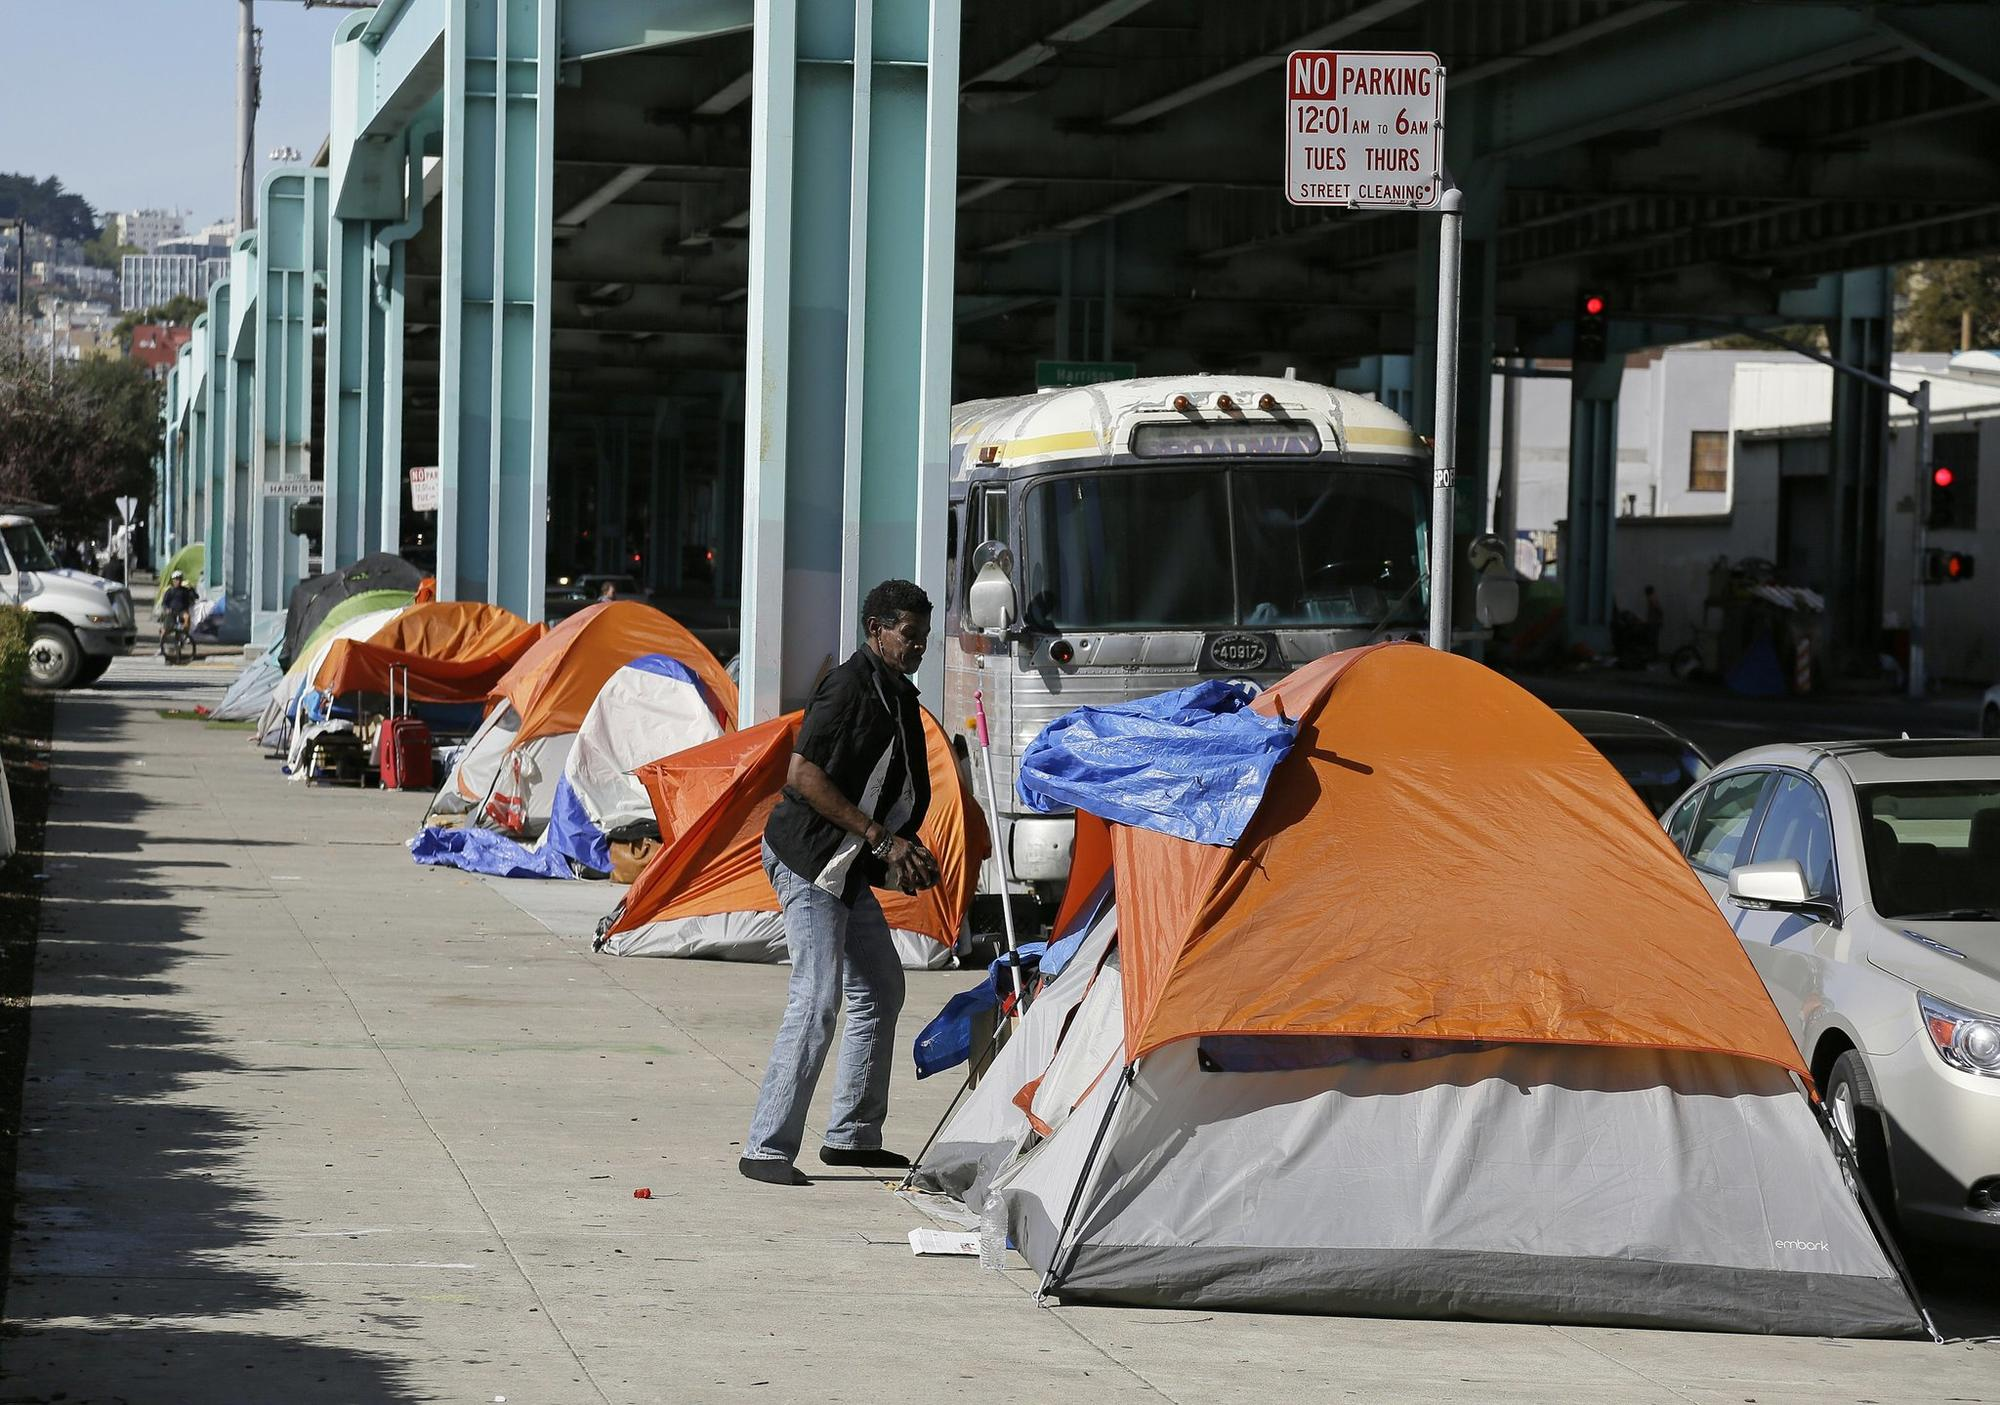 A man stand outside his tent on Division Street Tuesday, Feb. 23, 2016, in San Francisco. San Francisco health officials declared a tent city that has been growing along a city s